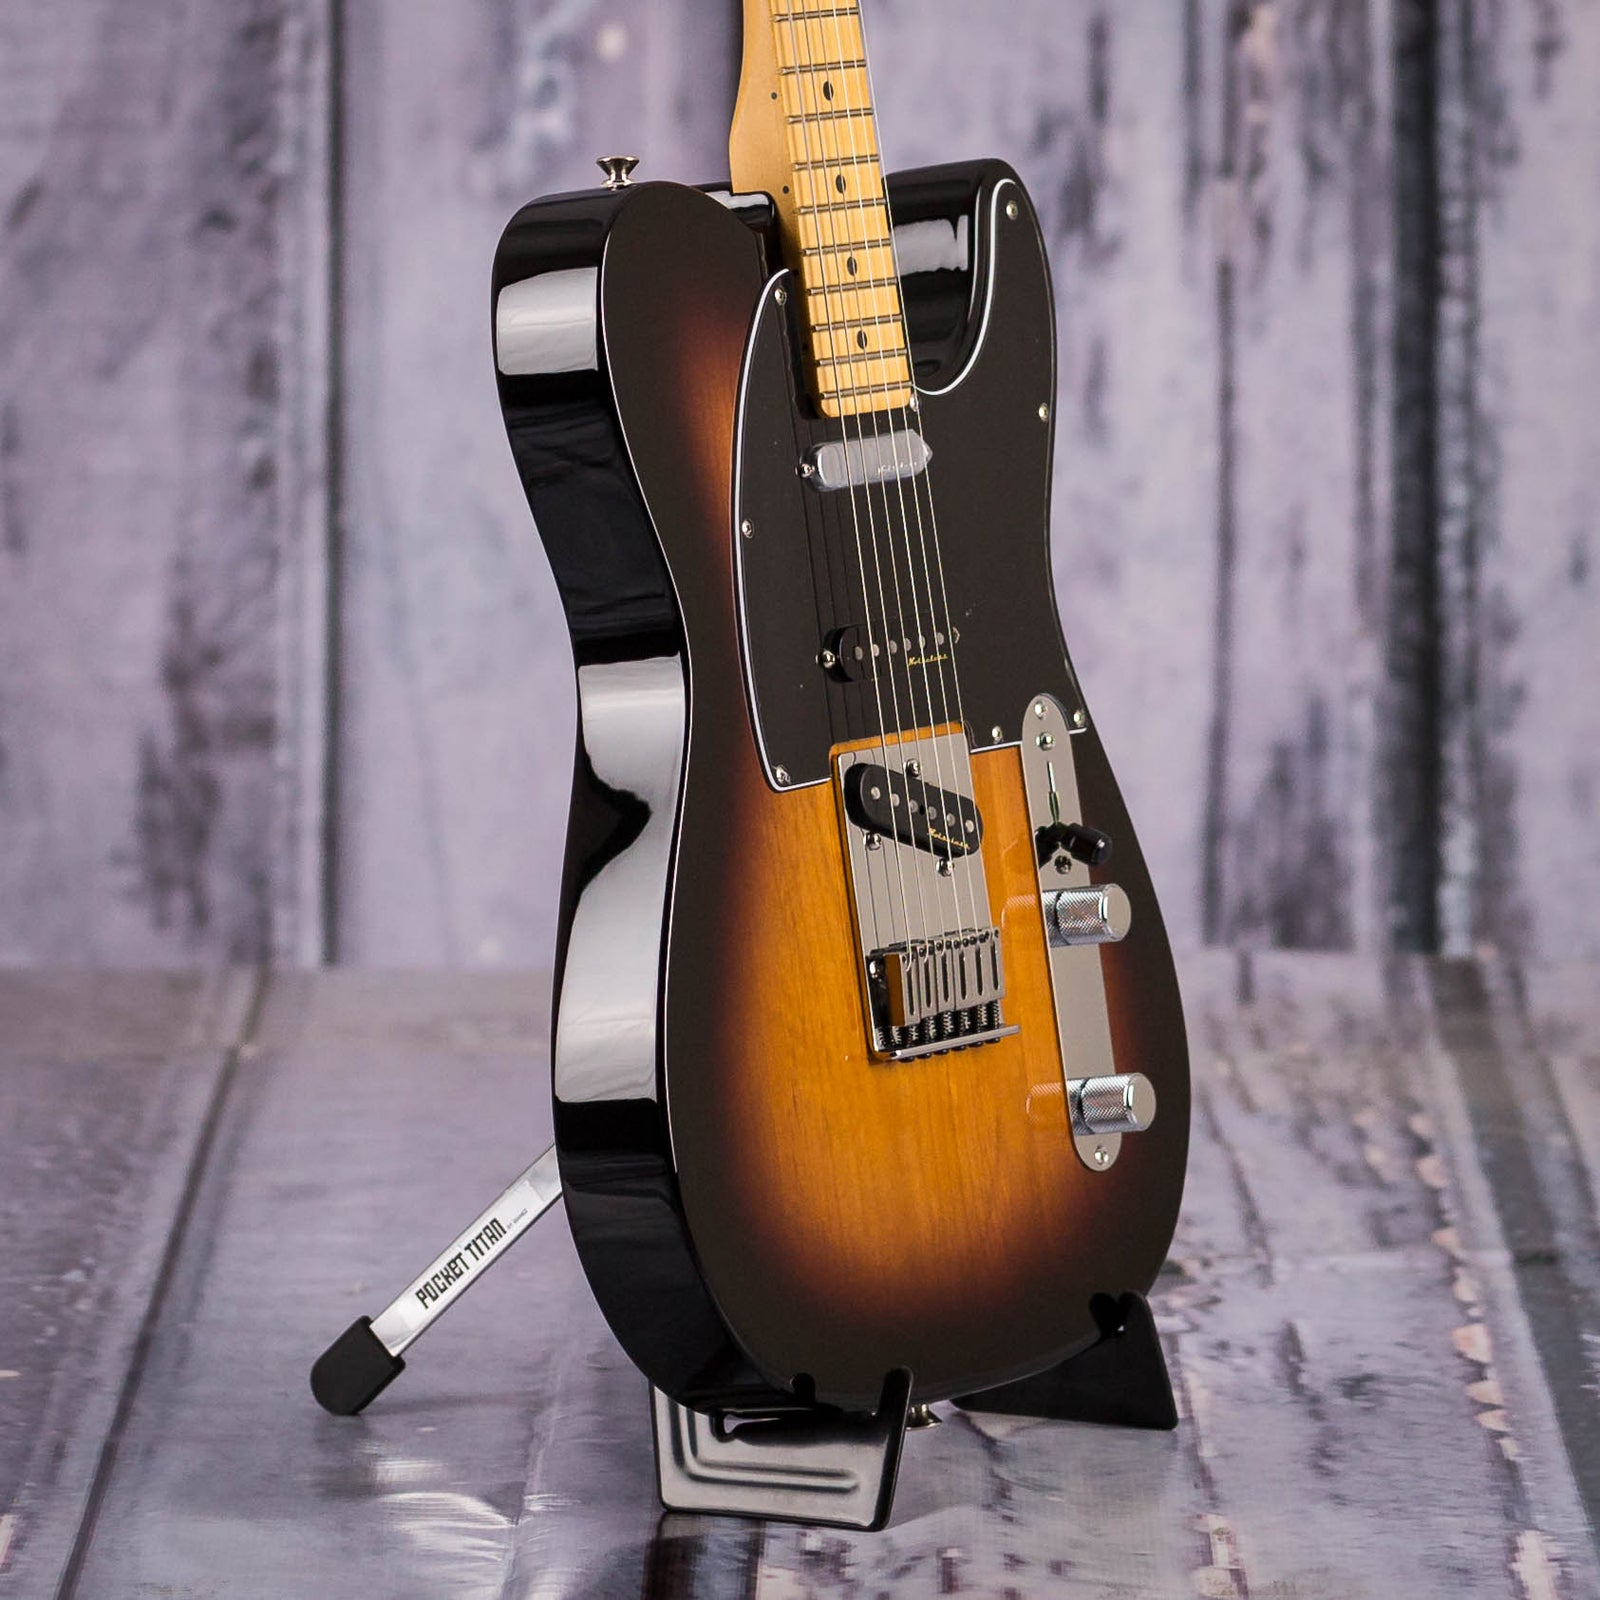 fender deluxe nashville tele two color sunburst for sale replay guitar. Black Bedroom Furniture Sets. Home Design Ideas